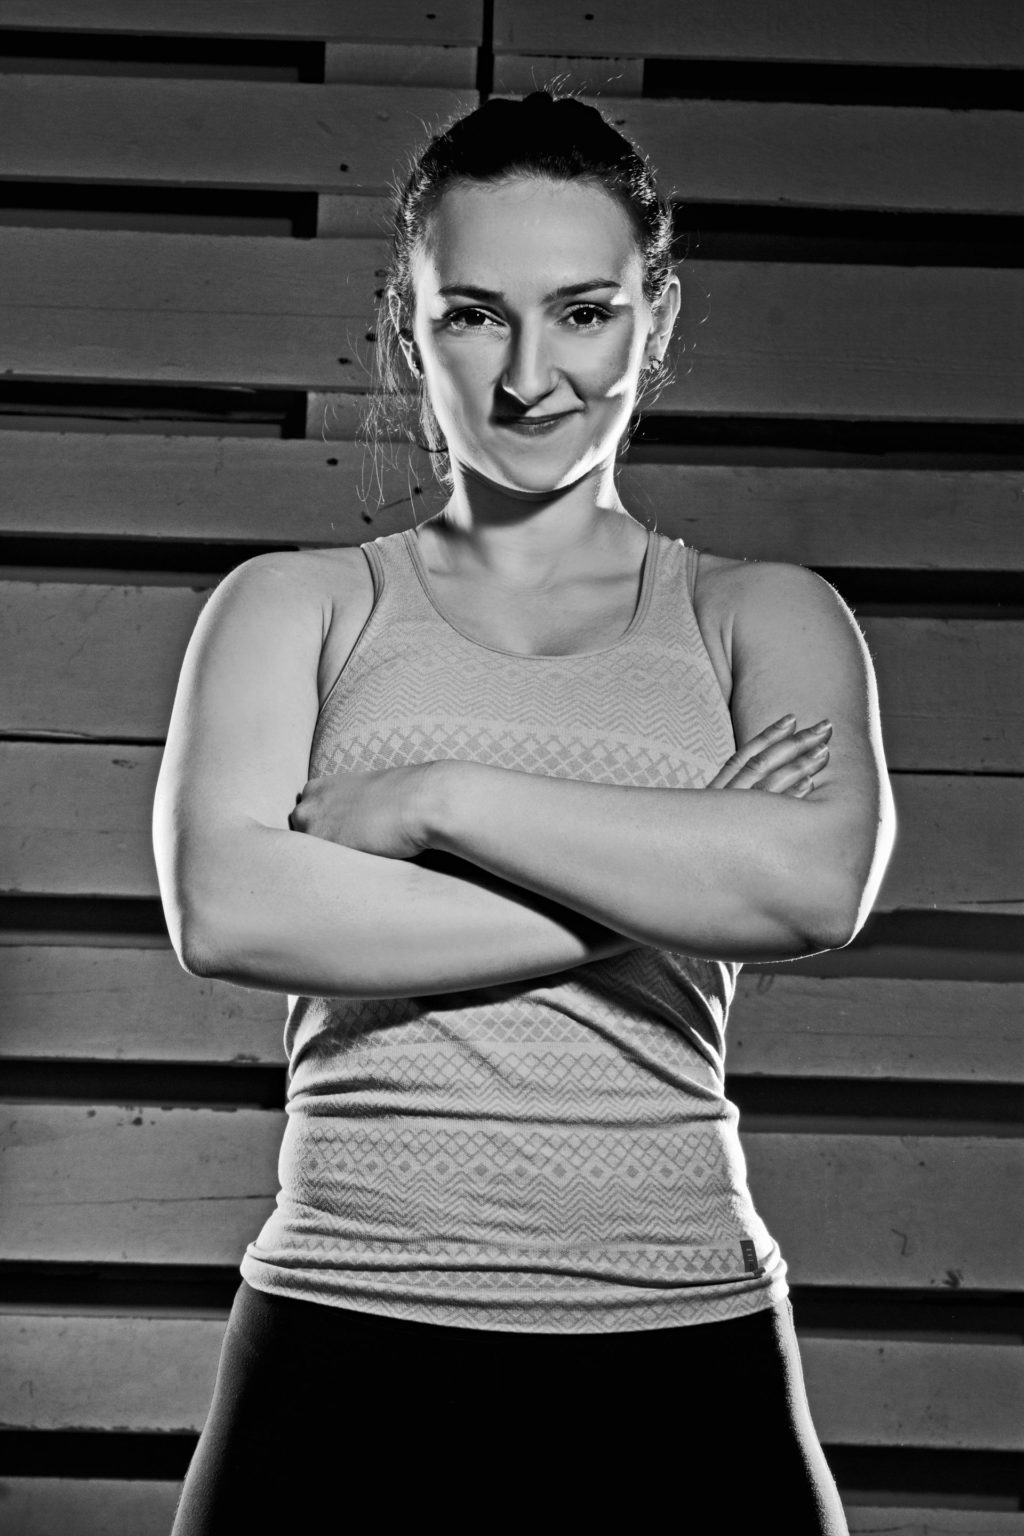 fit girl black and white posing